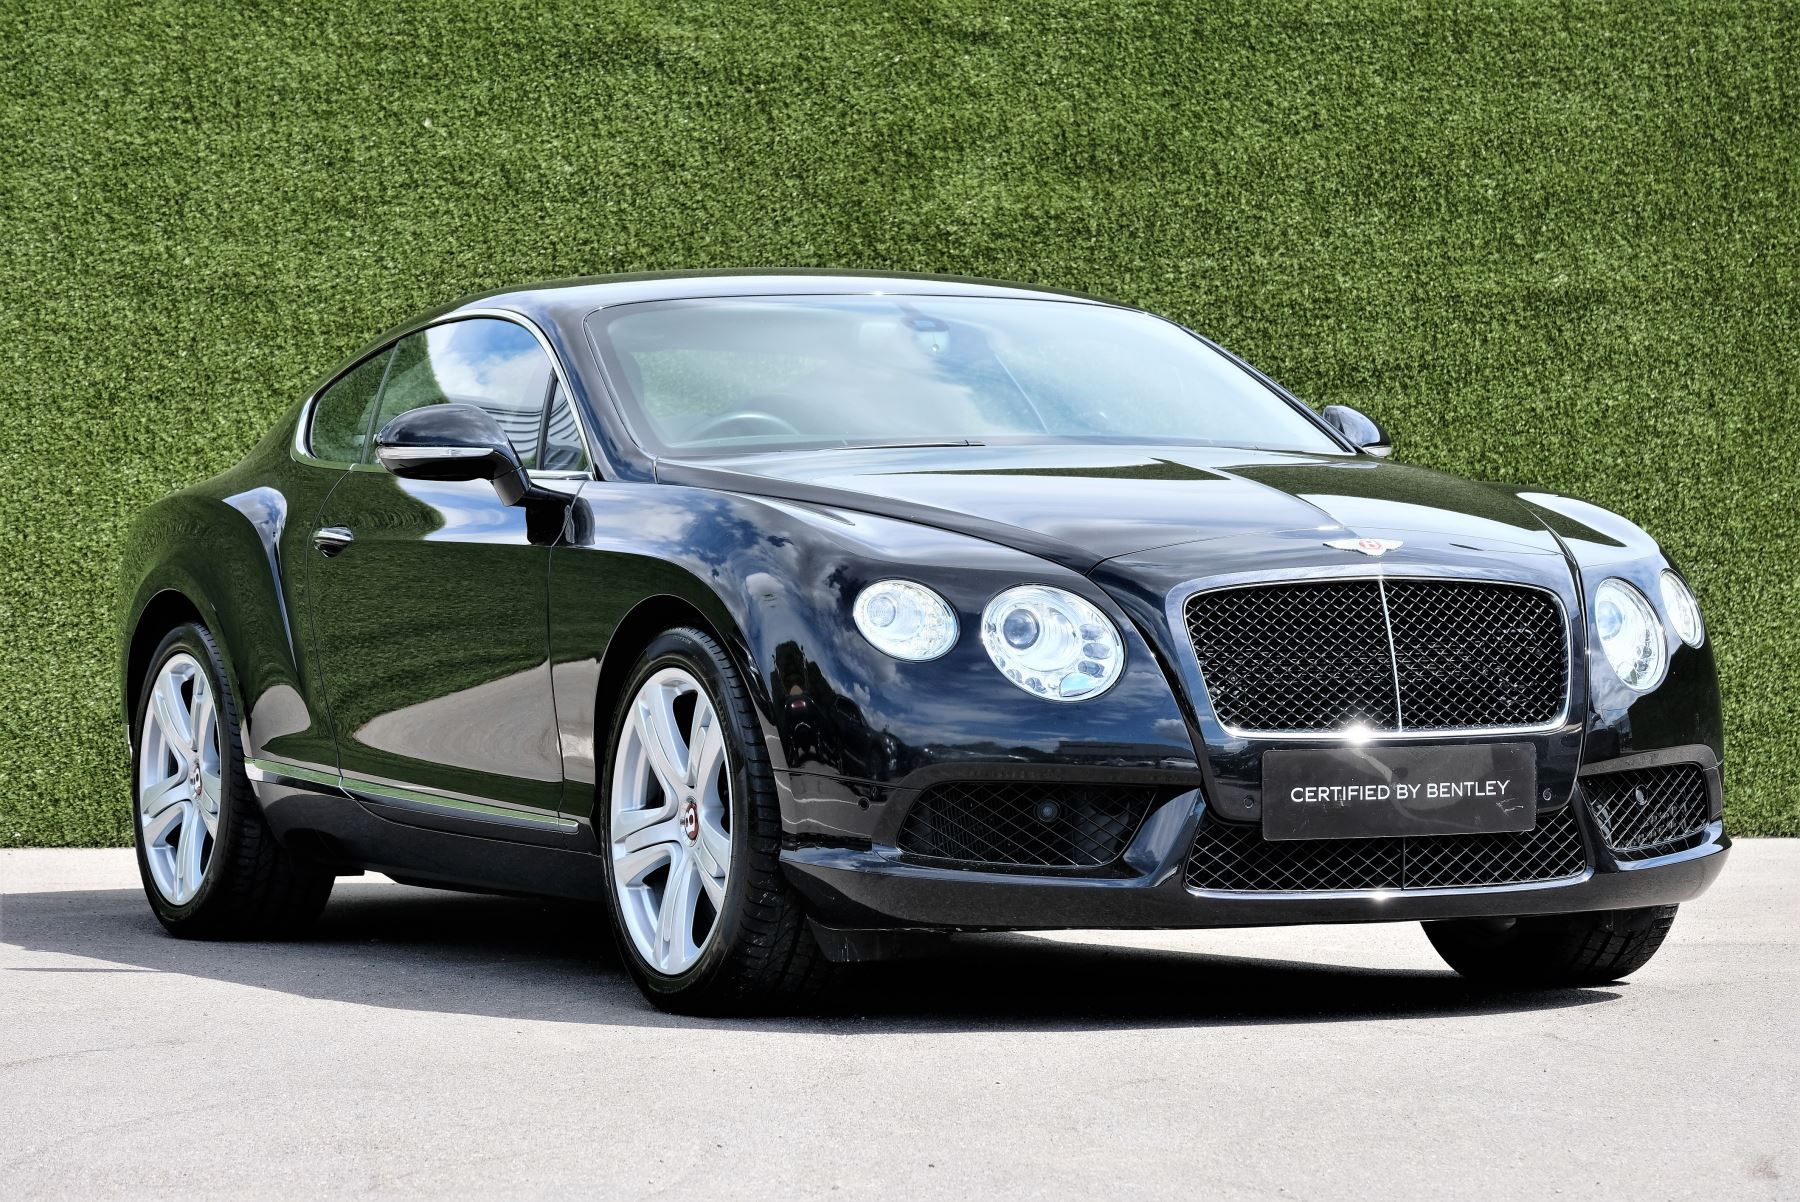 Bentley Continental GT 4.0 V8 2dr Automatic Coupe (2013)